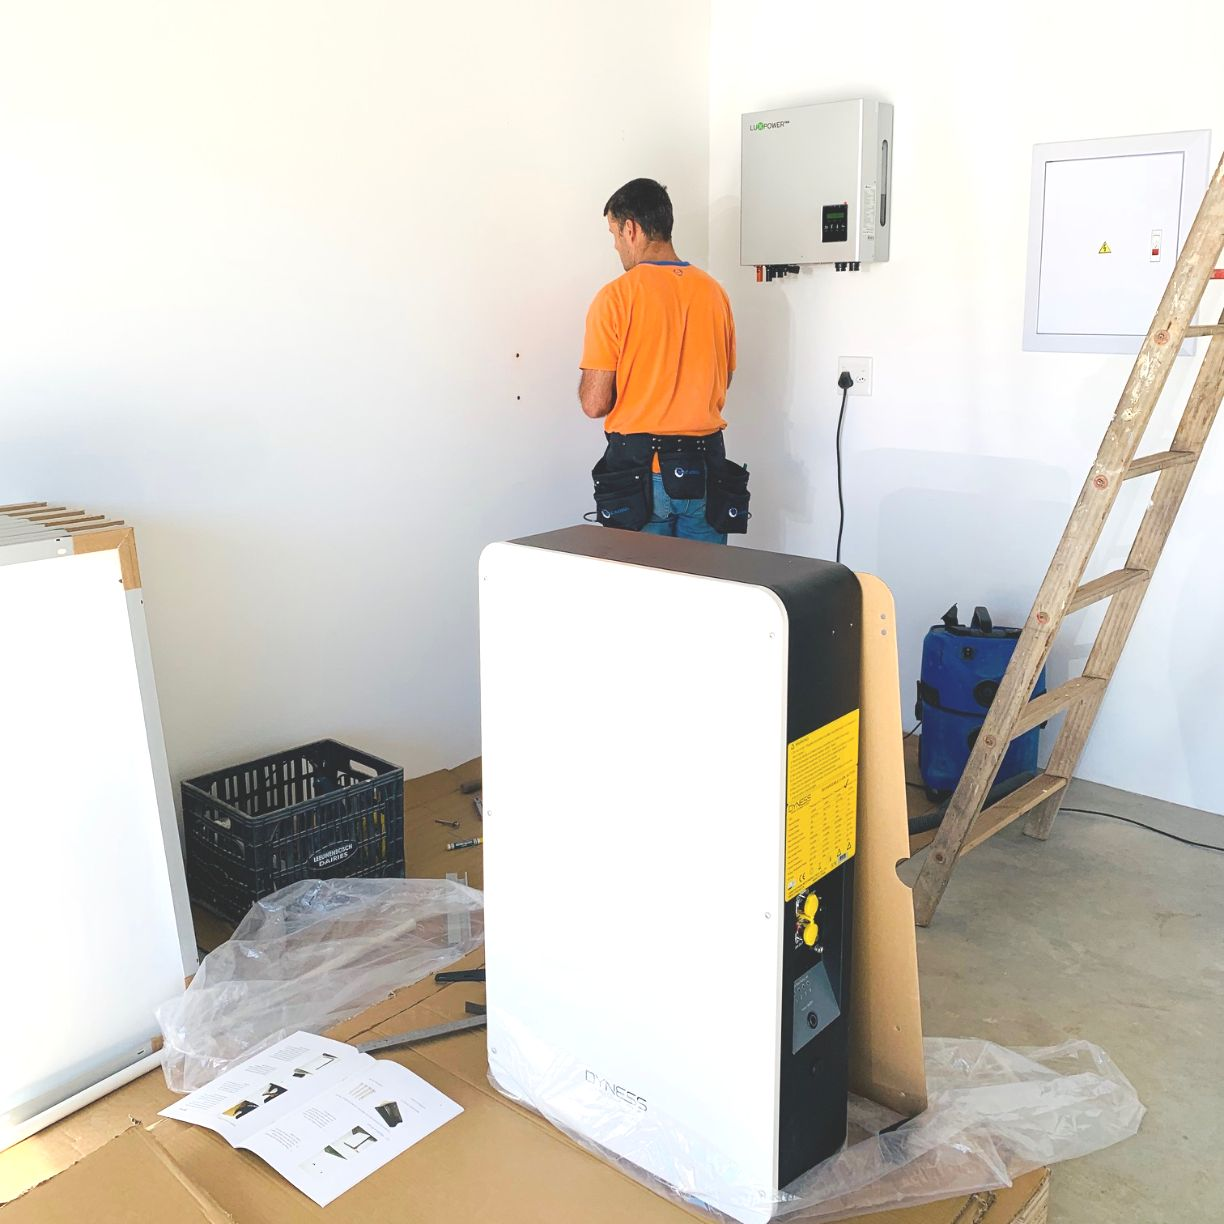 Installation of the Inverter & Powerbox in the garage.